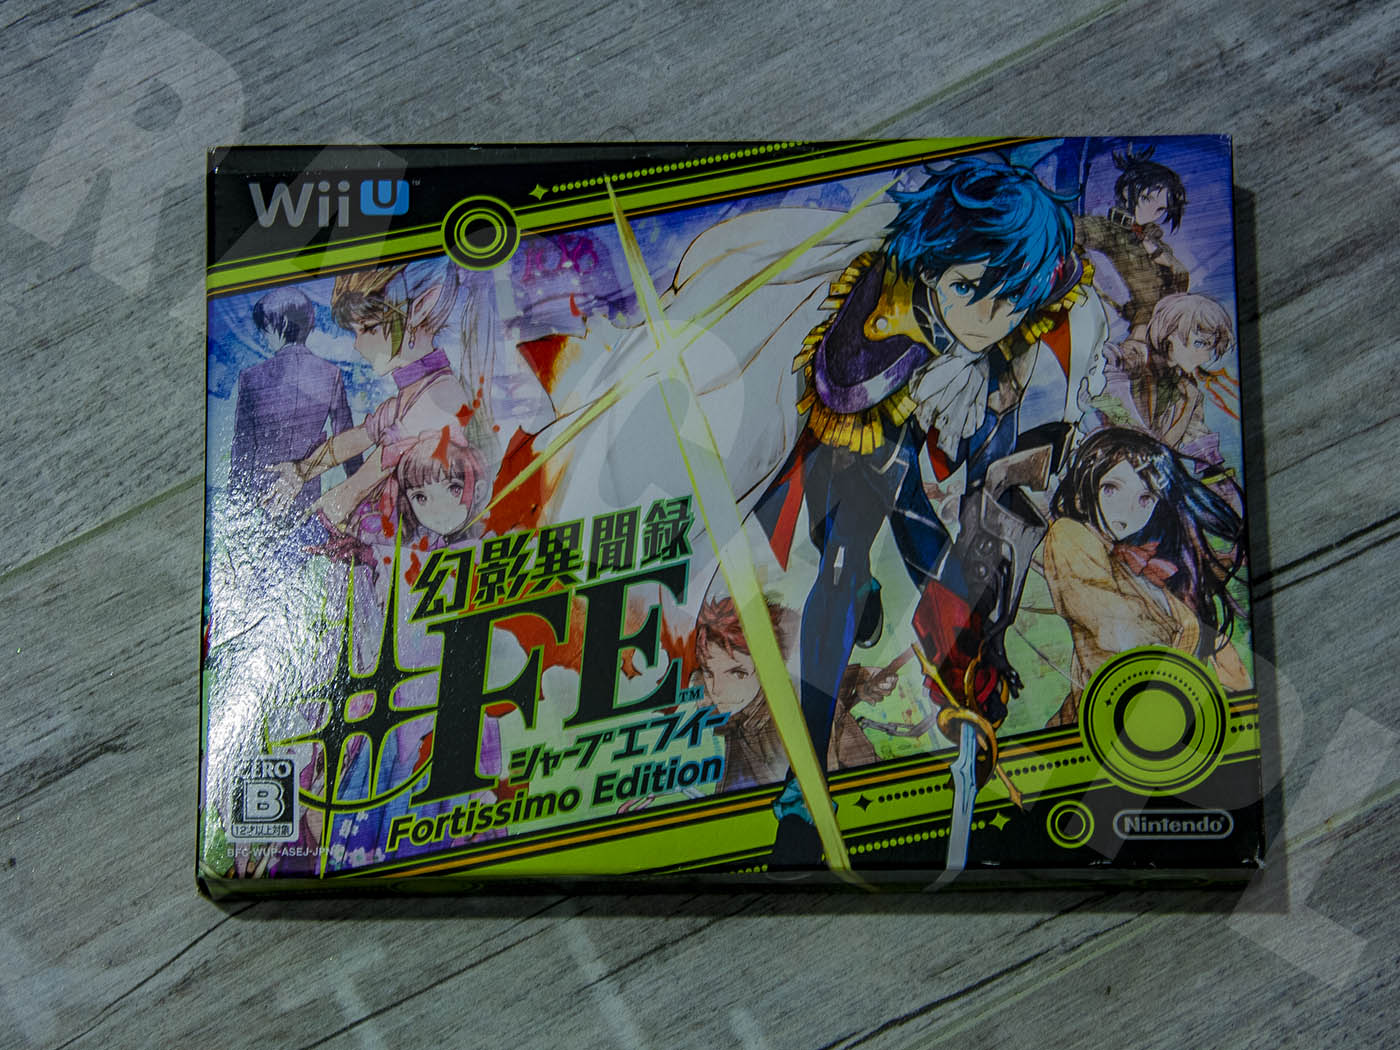 Tokyo Mirage Sessions FE Fortissimo Edition 2015 0001 BOX